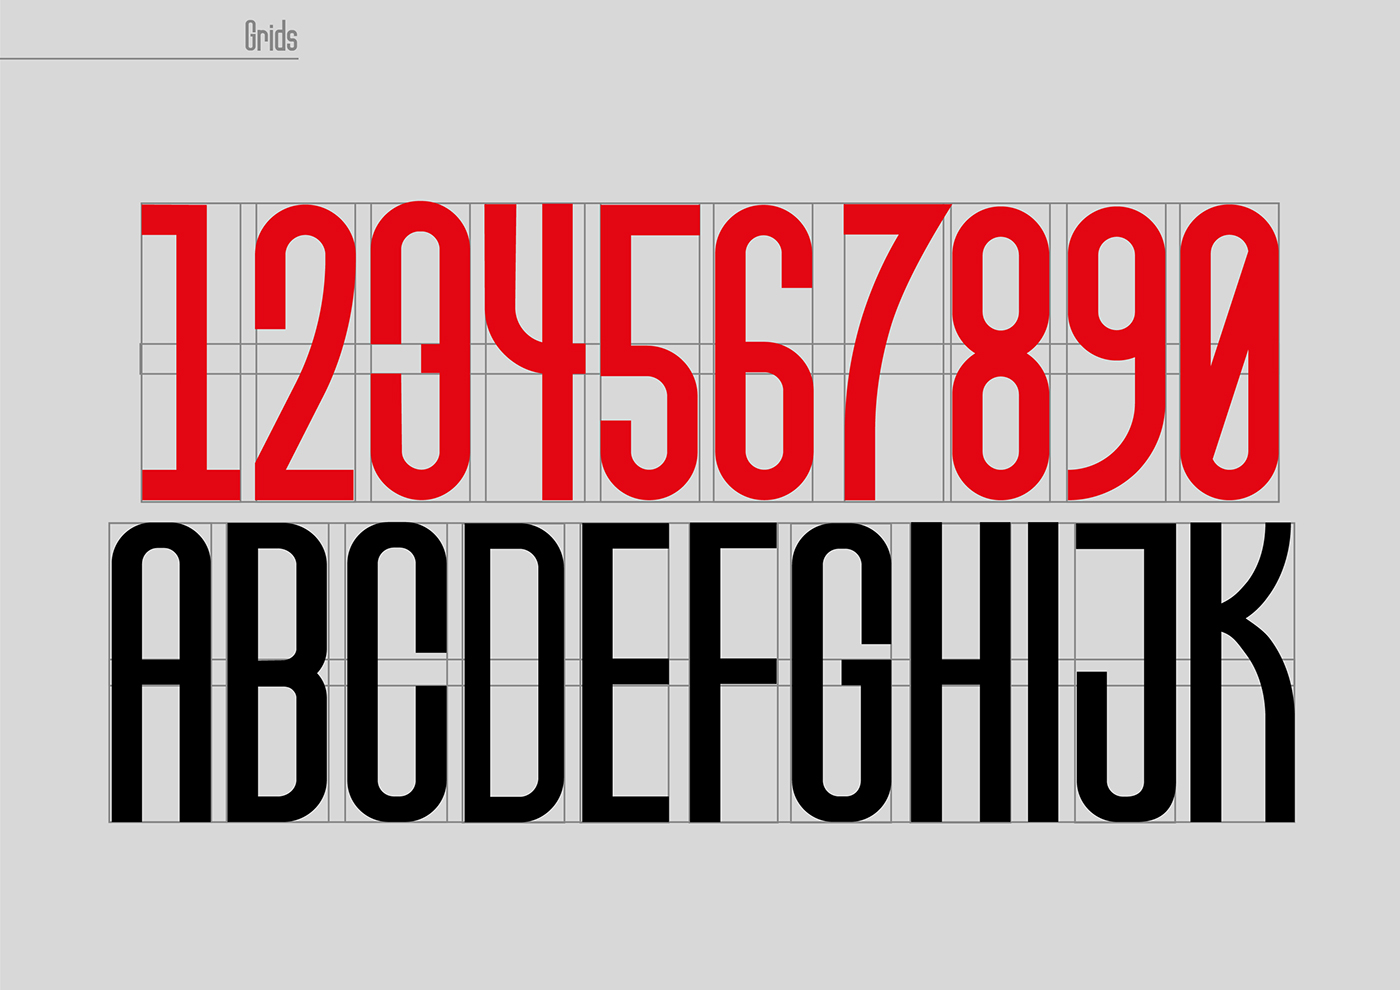 type Typeface graphic design condensed free font colour berlin letters letterforms